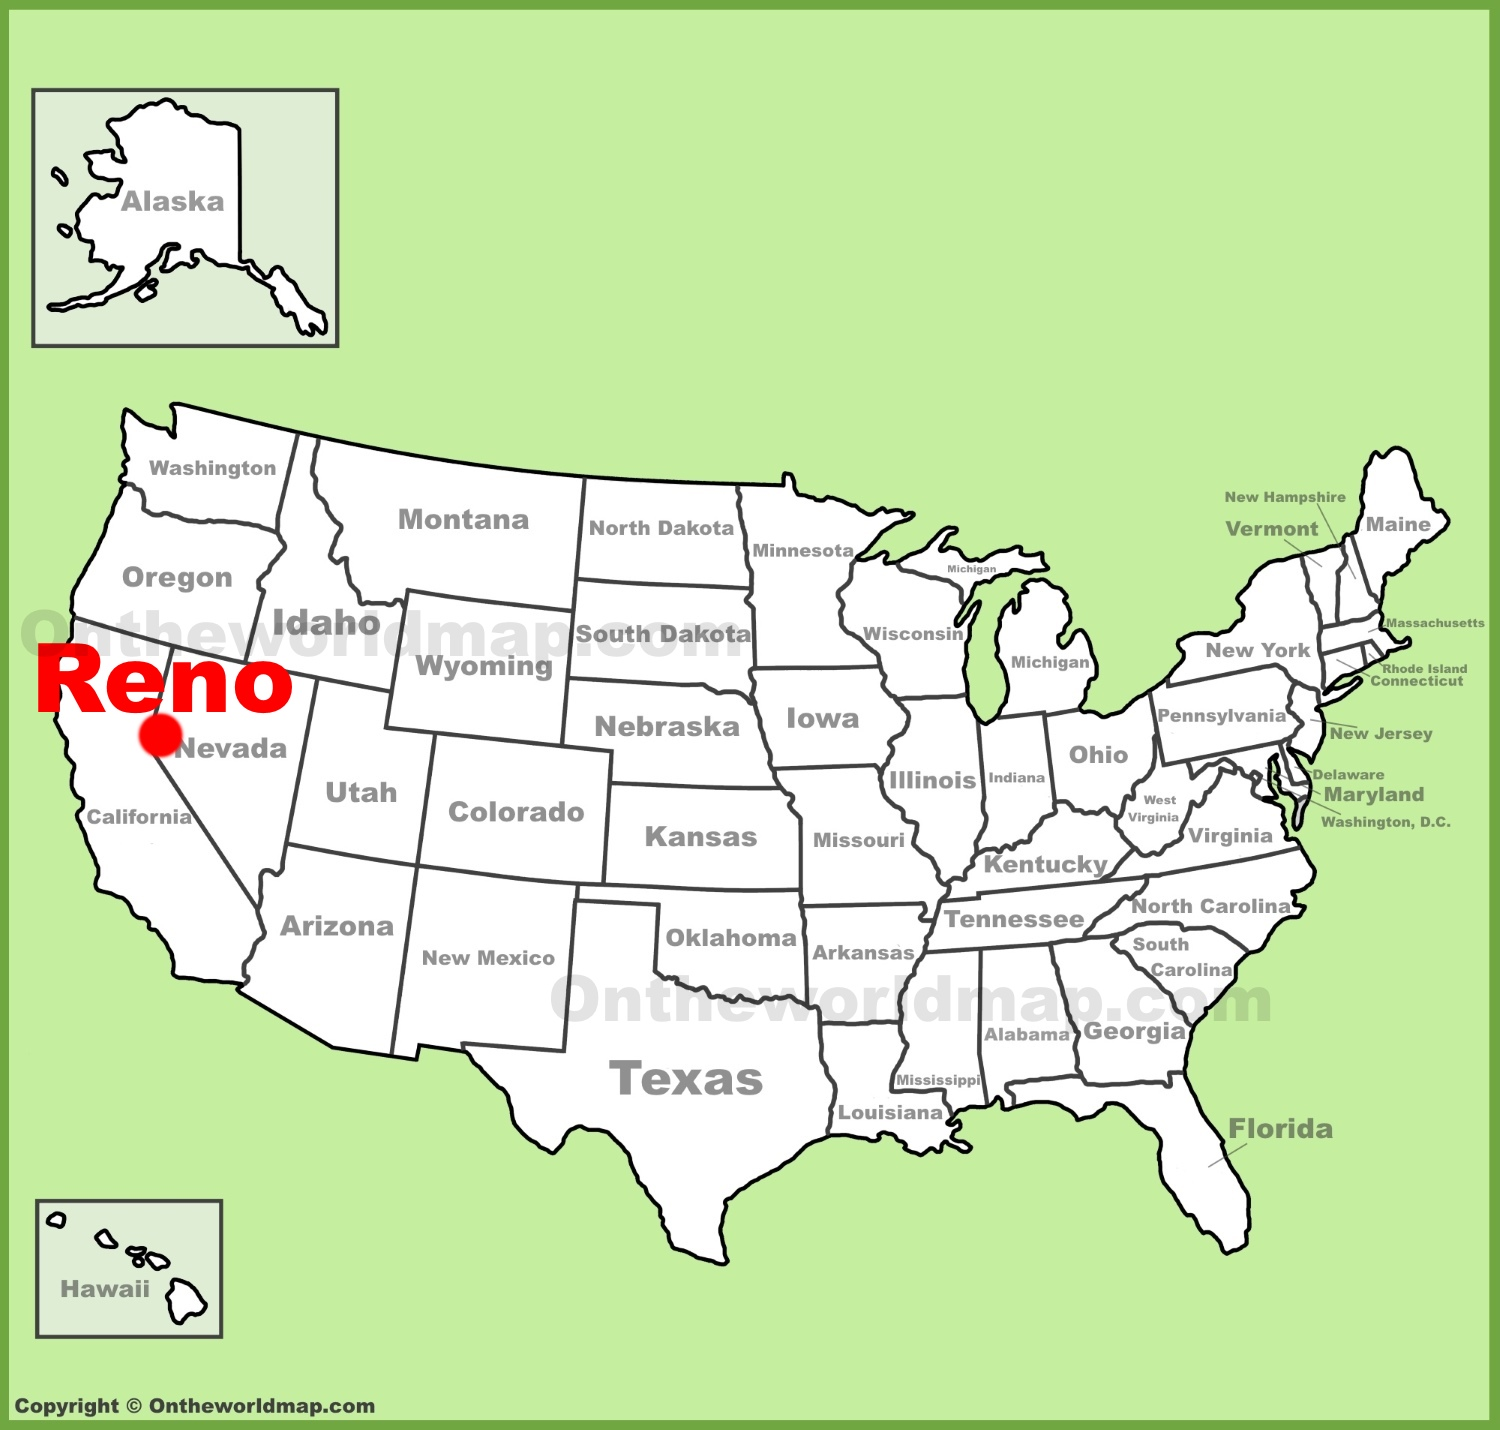 Reno location on the US Map